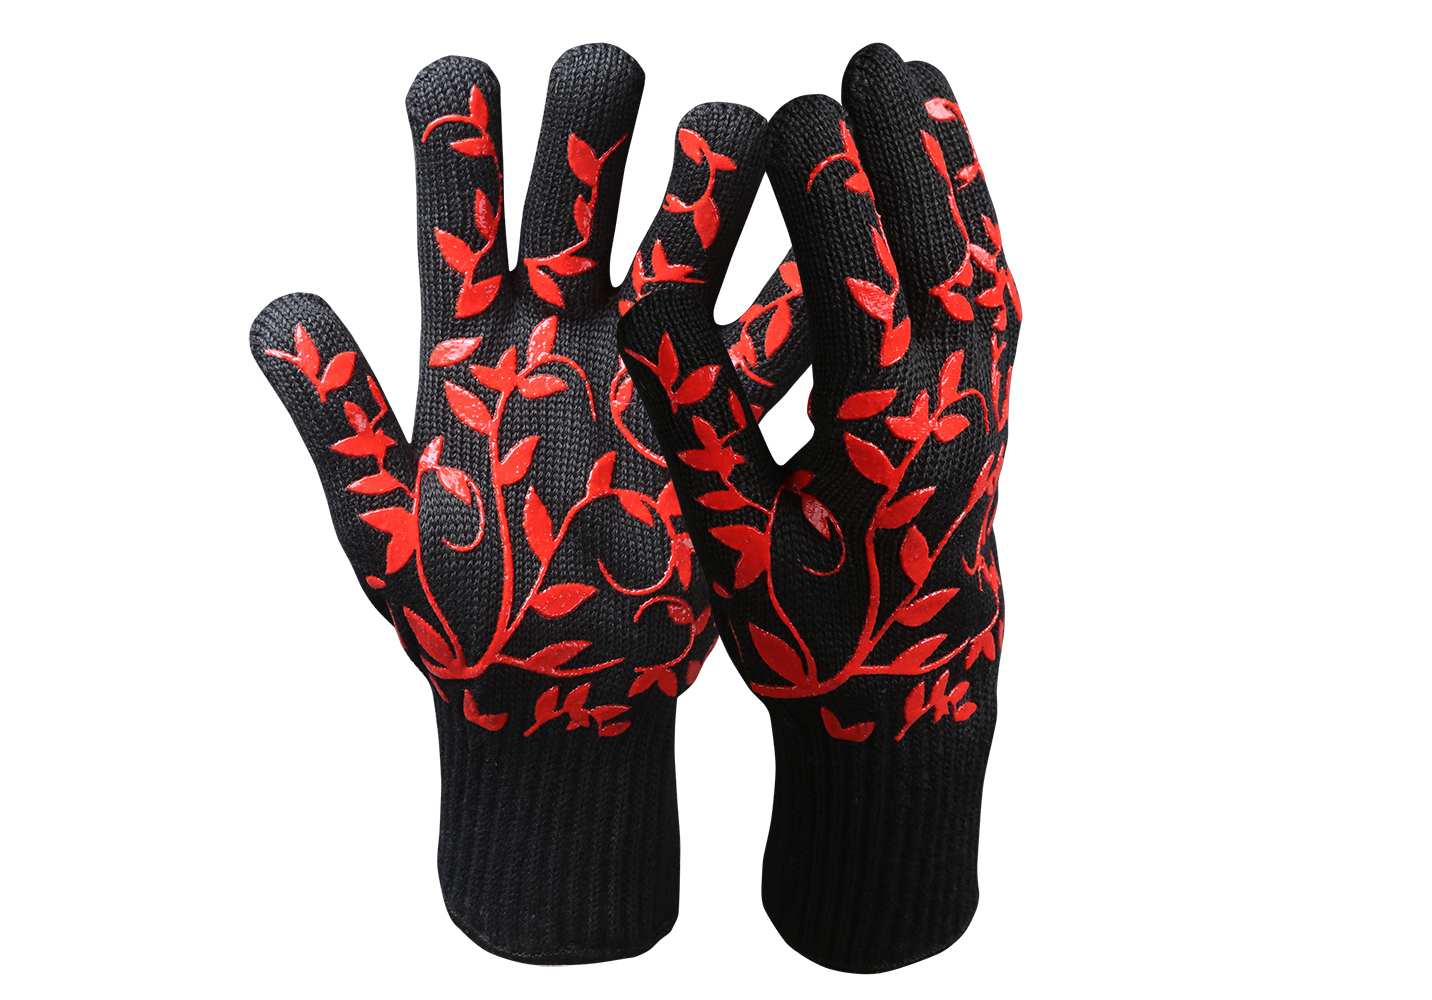 The Griller BBQ Gloves for Cooking/HRG-003-R